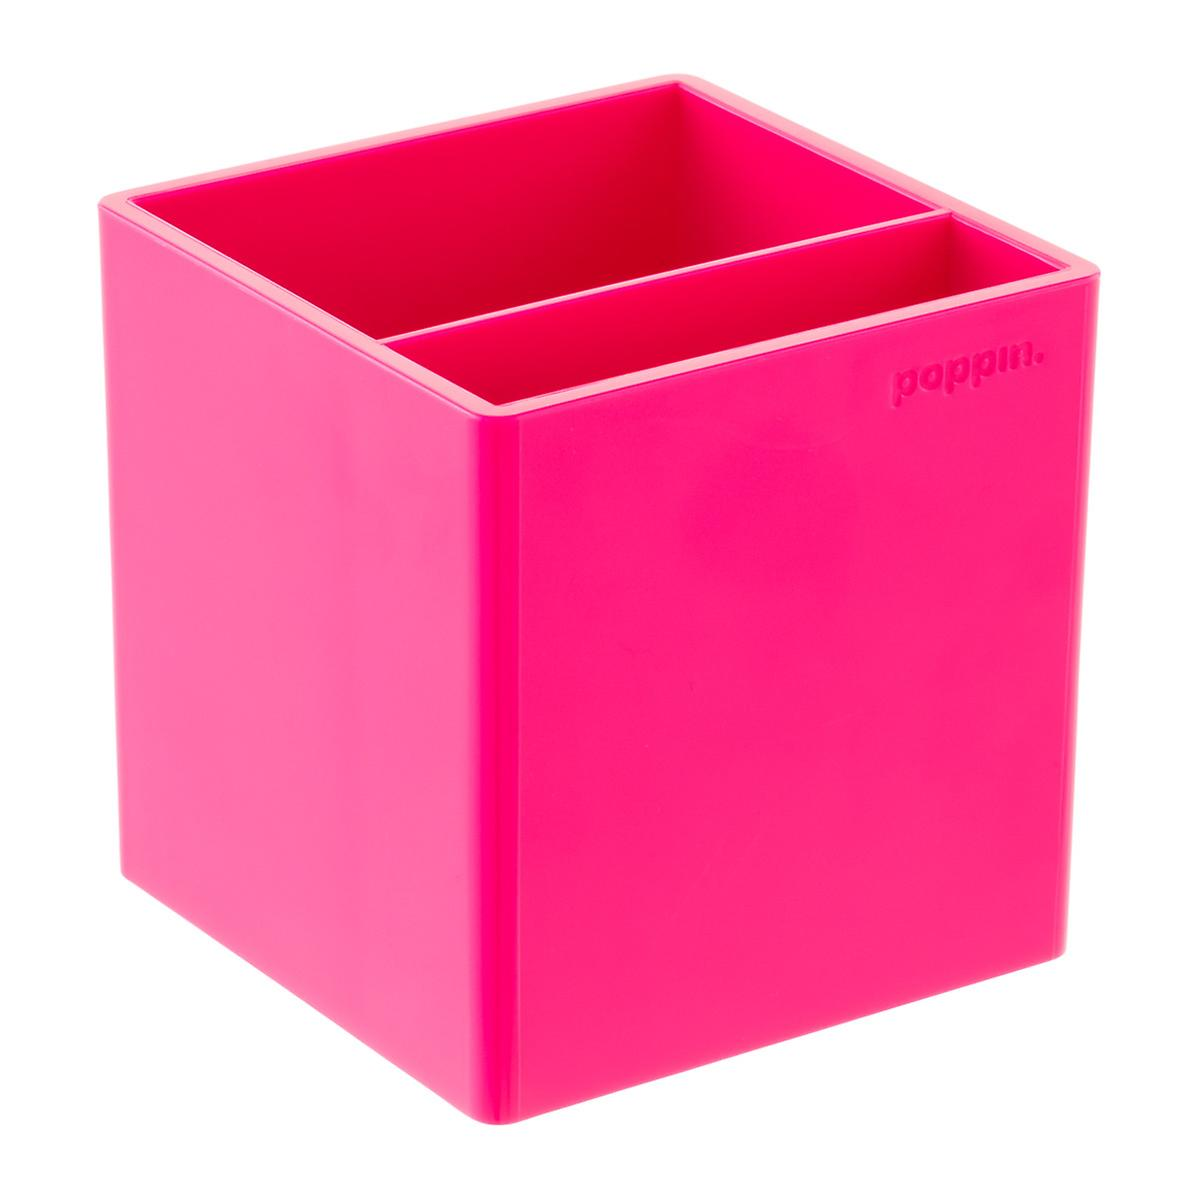 Pink Poppin Letter Tray Storage Kit | The Container Store